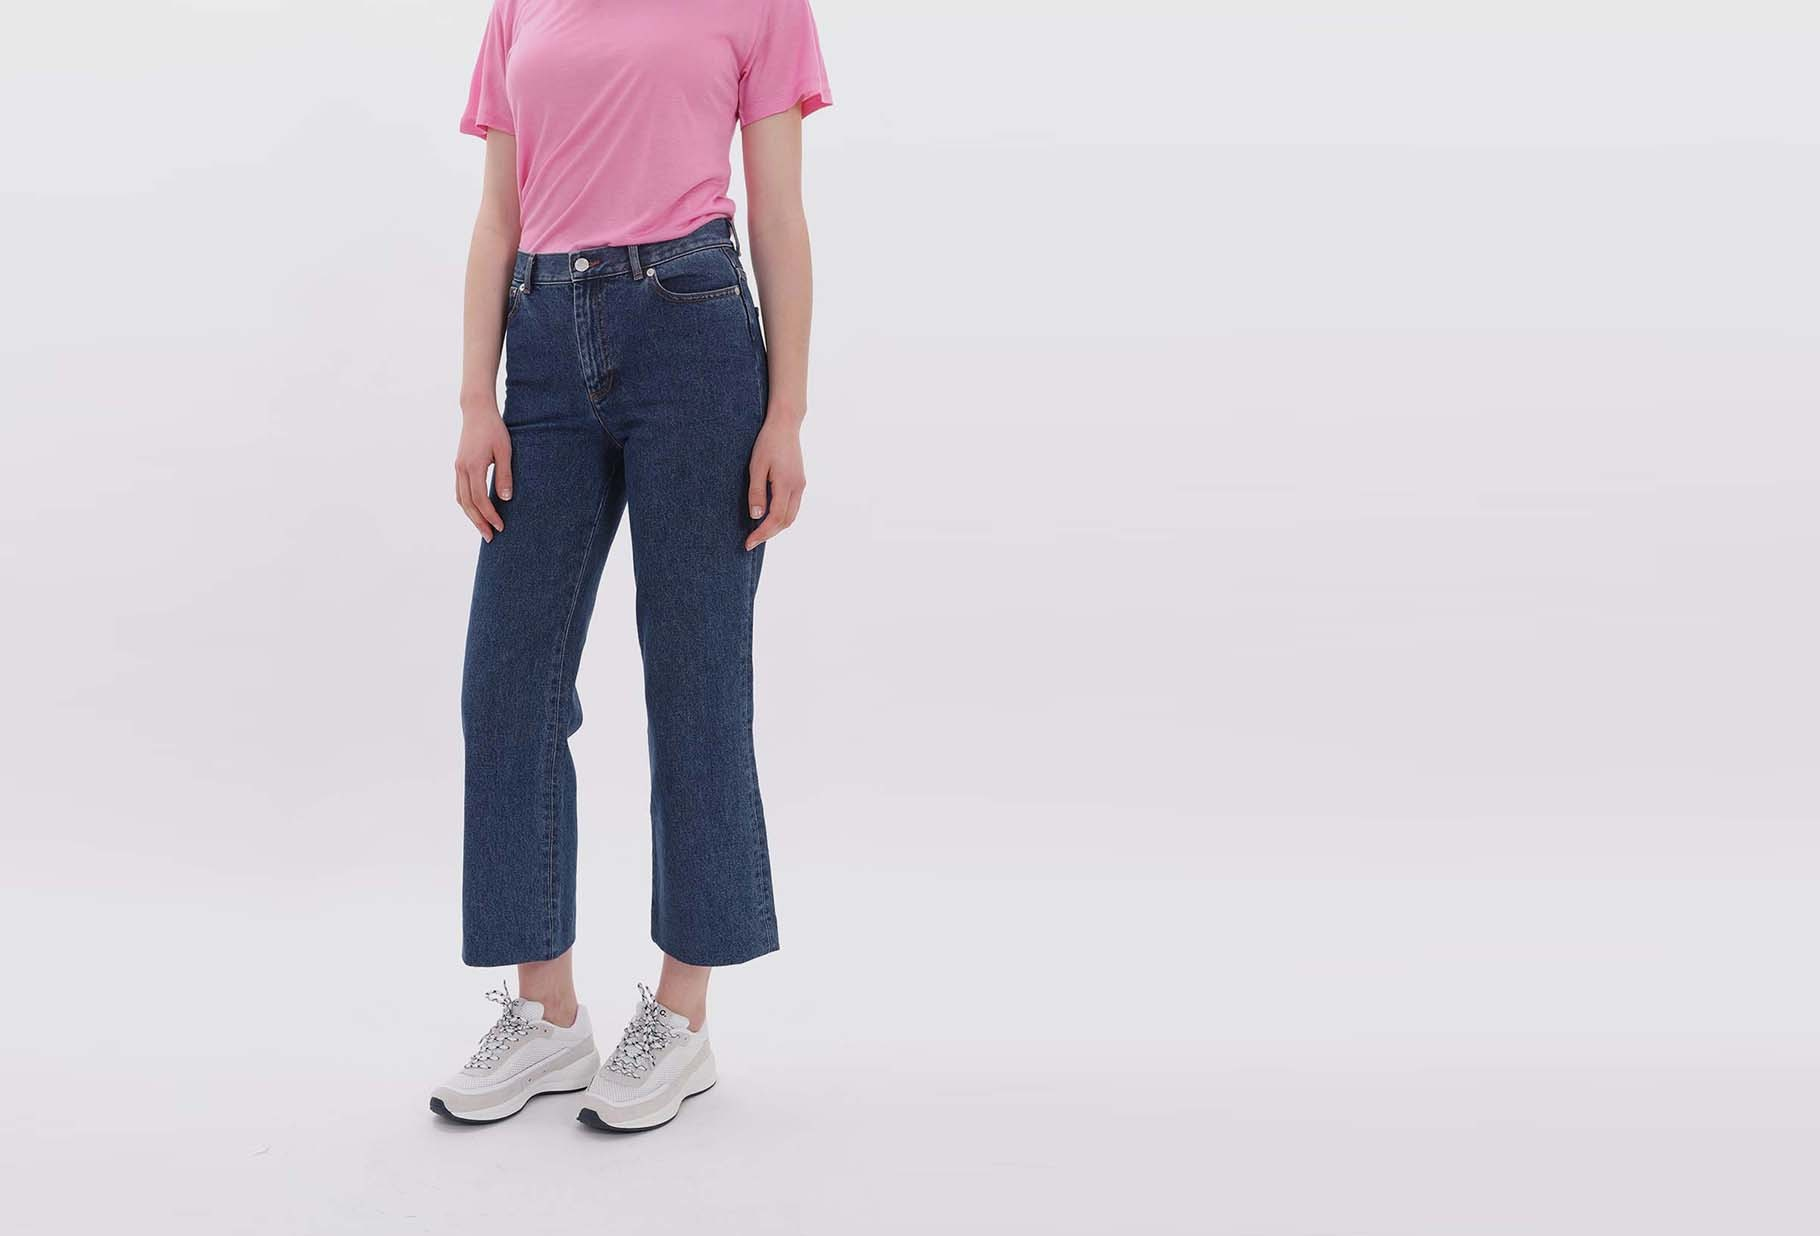 A.P.C. FOR WOMAN / Jean sailor Indigo delave